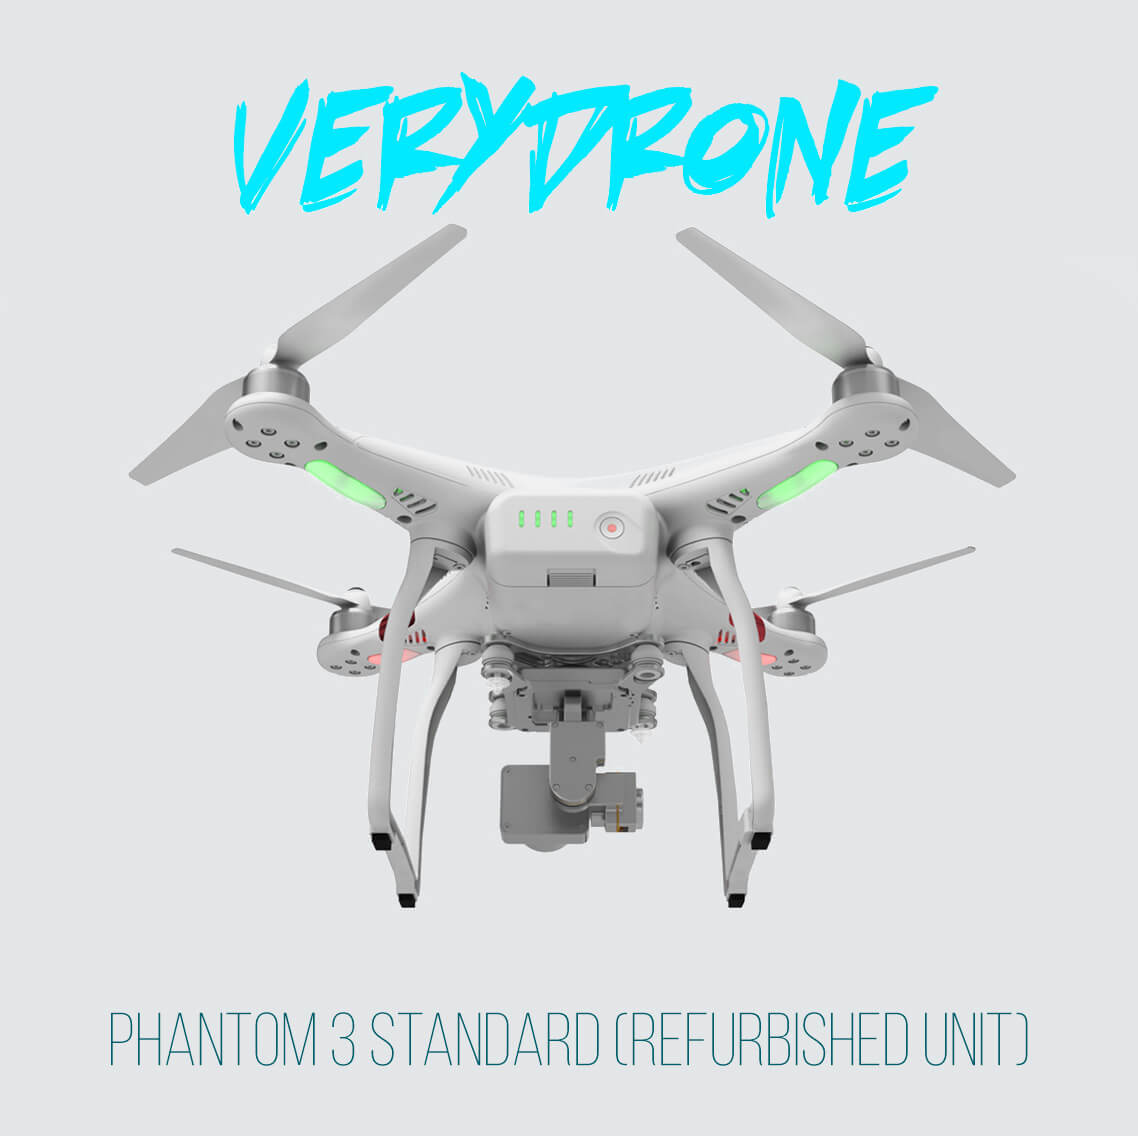 DJI Phantom 3 Standard (Refurbished Unit)